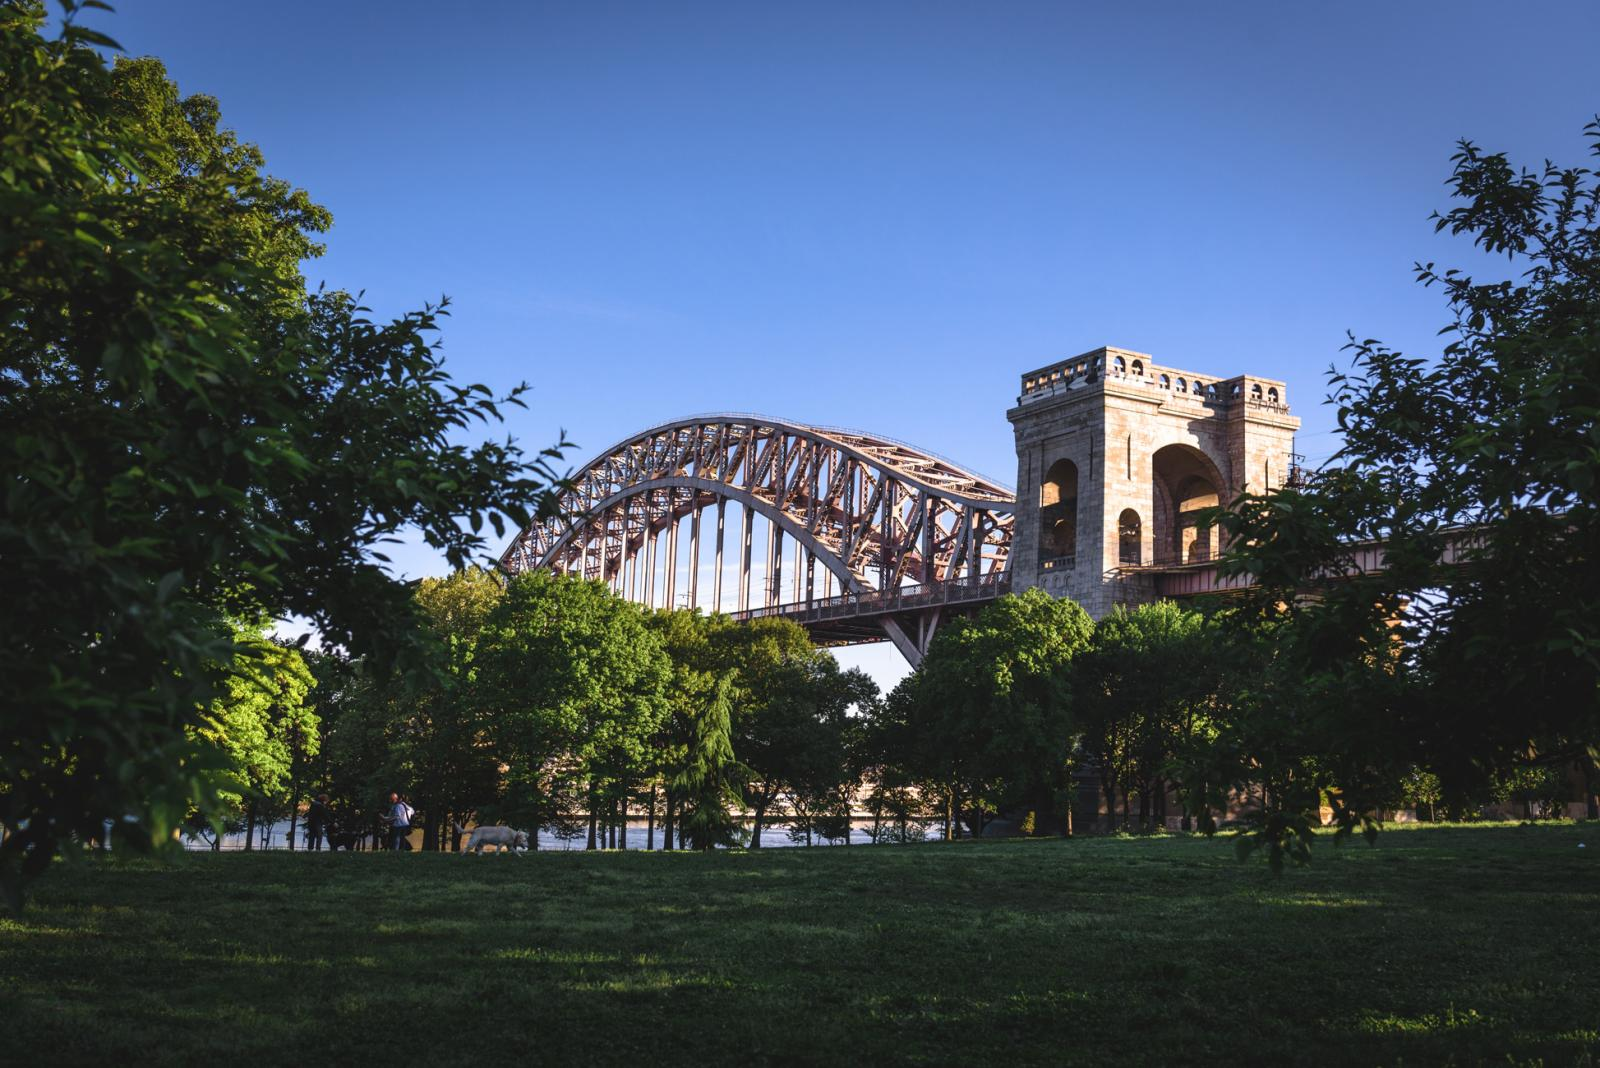 The Hells Gate Bridge overlooking Astoria Park